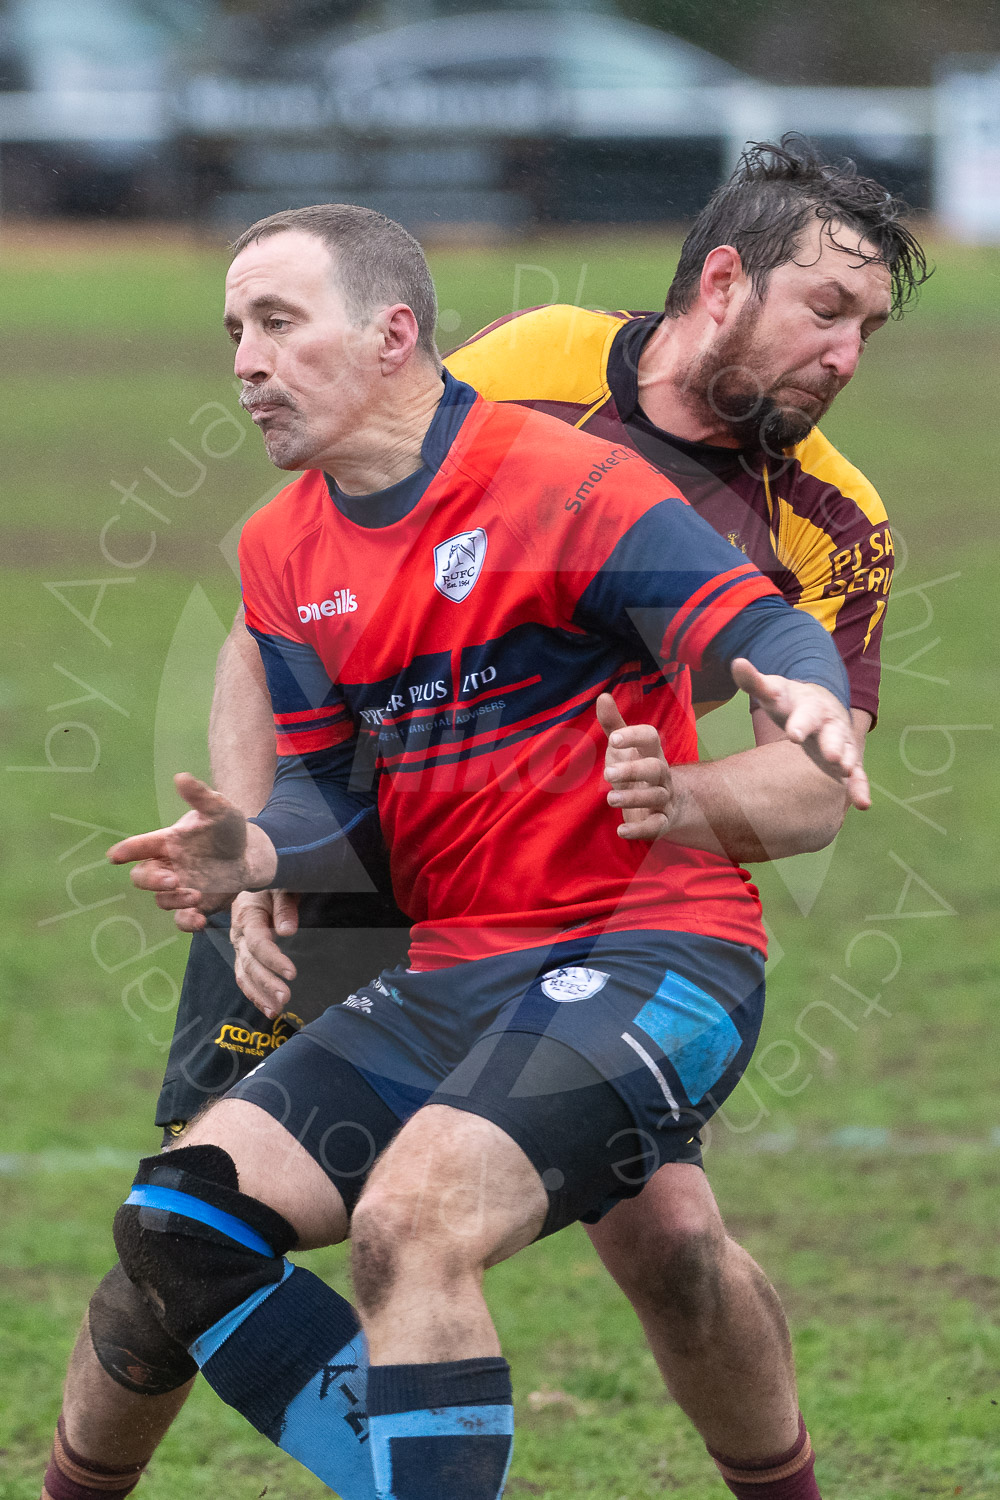 20181027 Amp Extras vs St Neots 2nd XV #2689